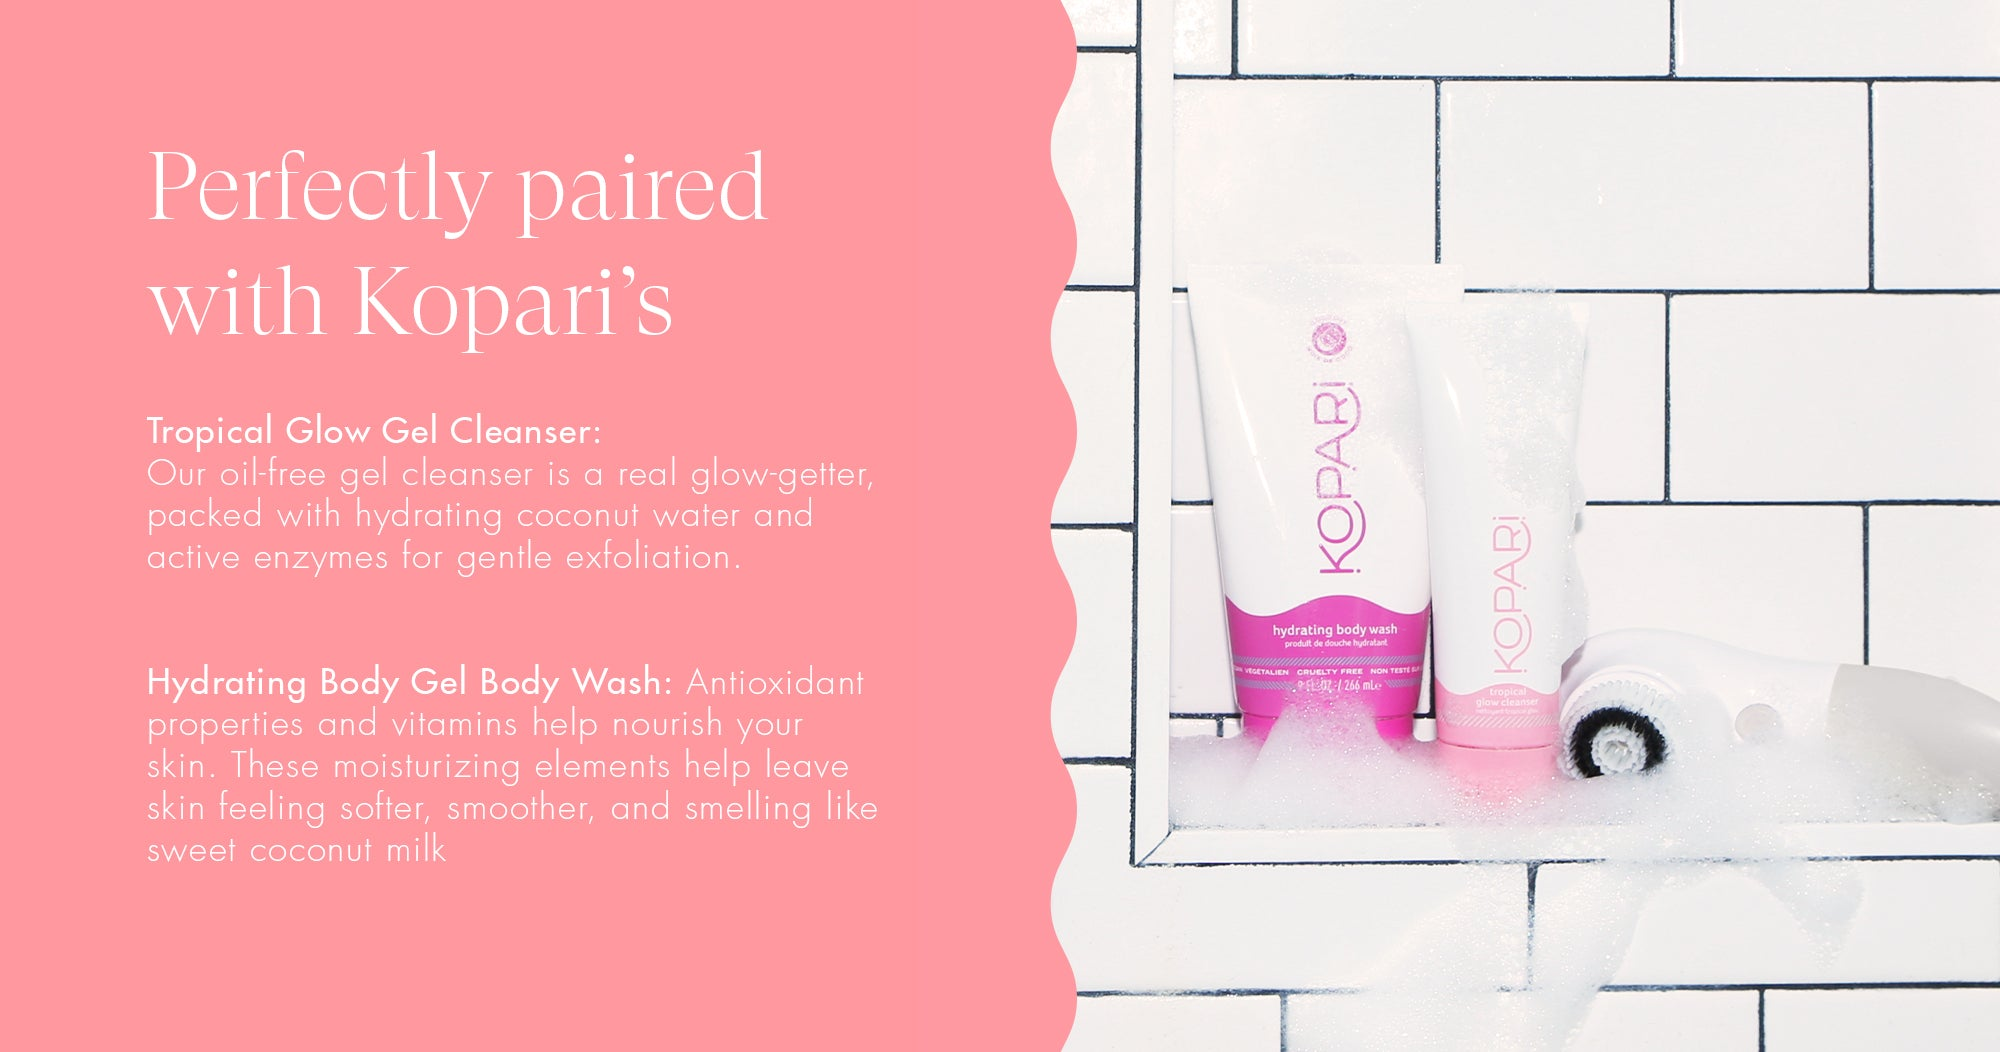 Perfecty paired with Kopari's Tropical Glow Gel Cleanser and Hydrating Body Gel Body Wash